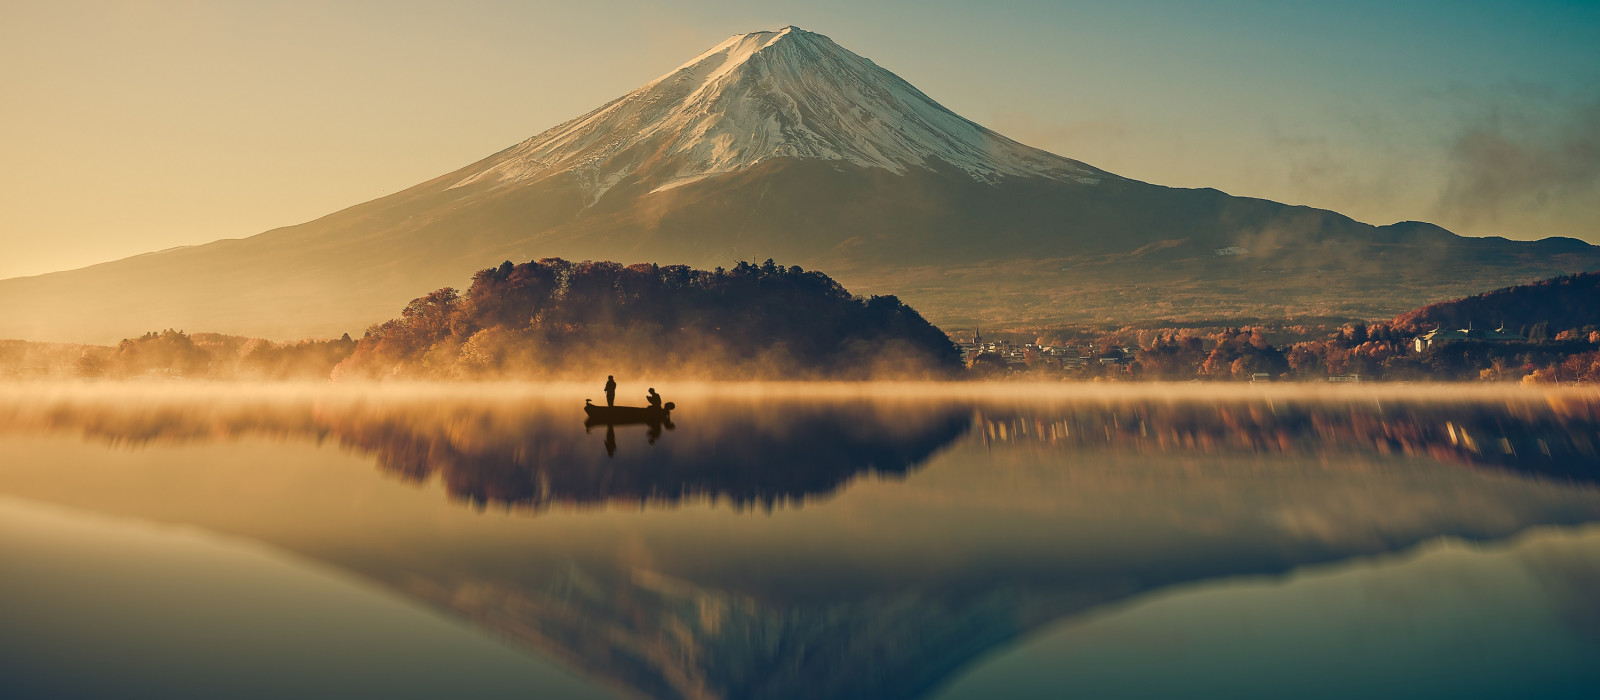 Hotel Mt Fuji Mountain Hut Japan